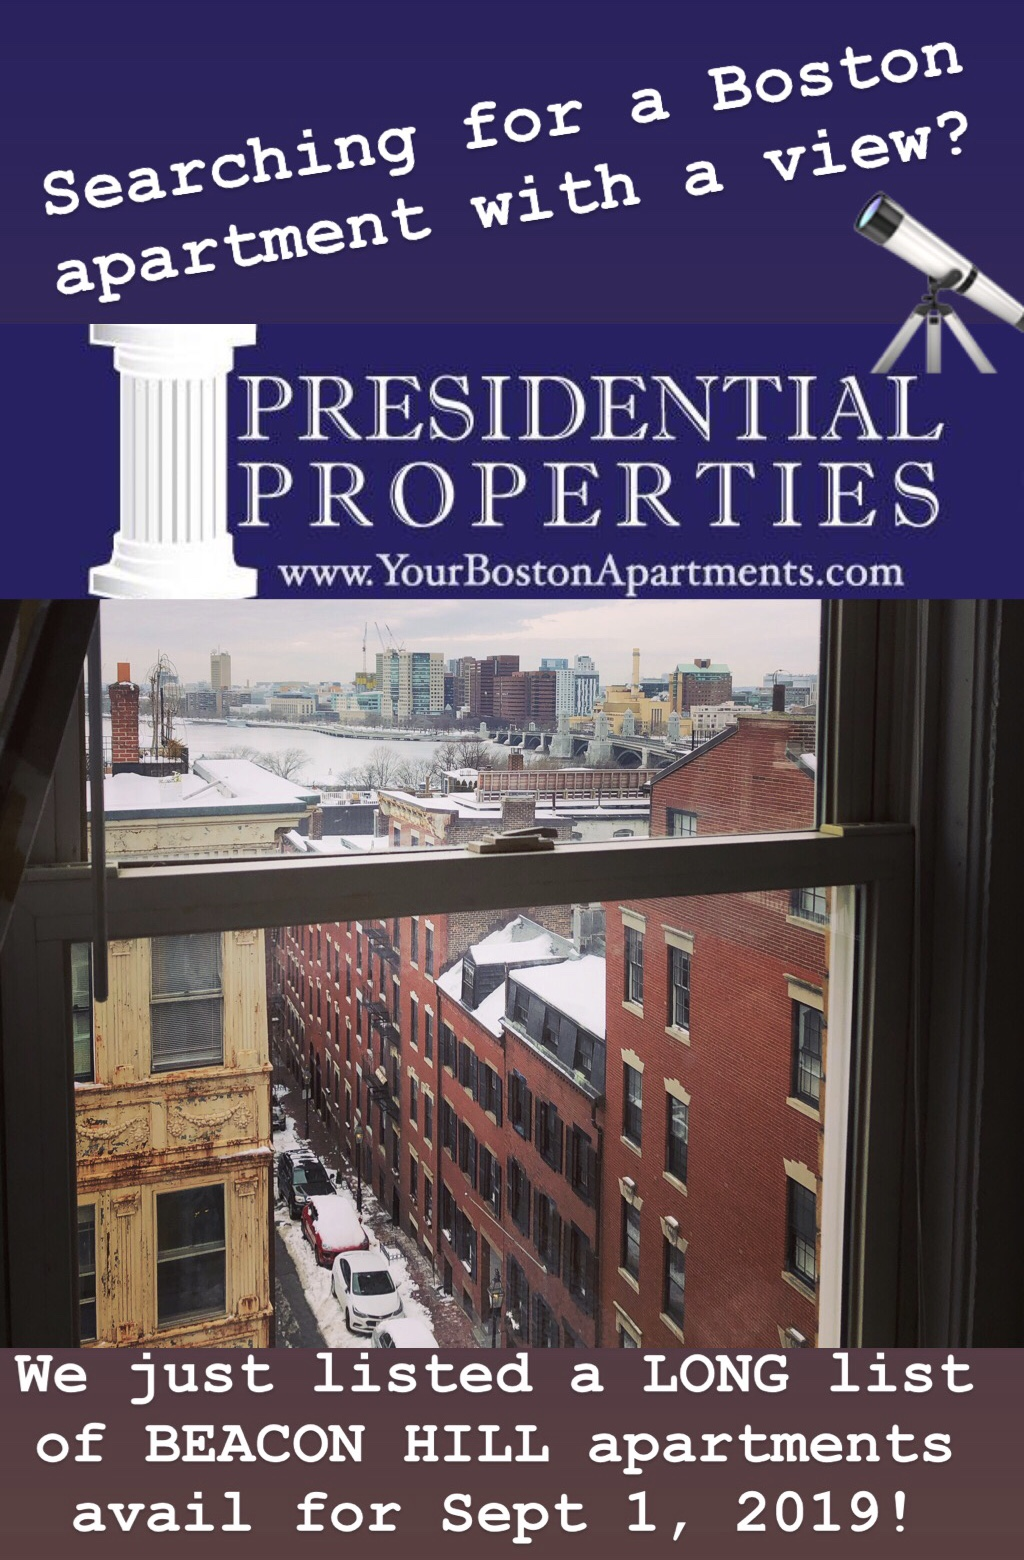 Searching for a #Bostonapartment??